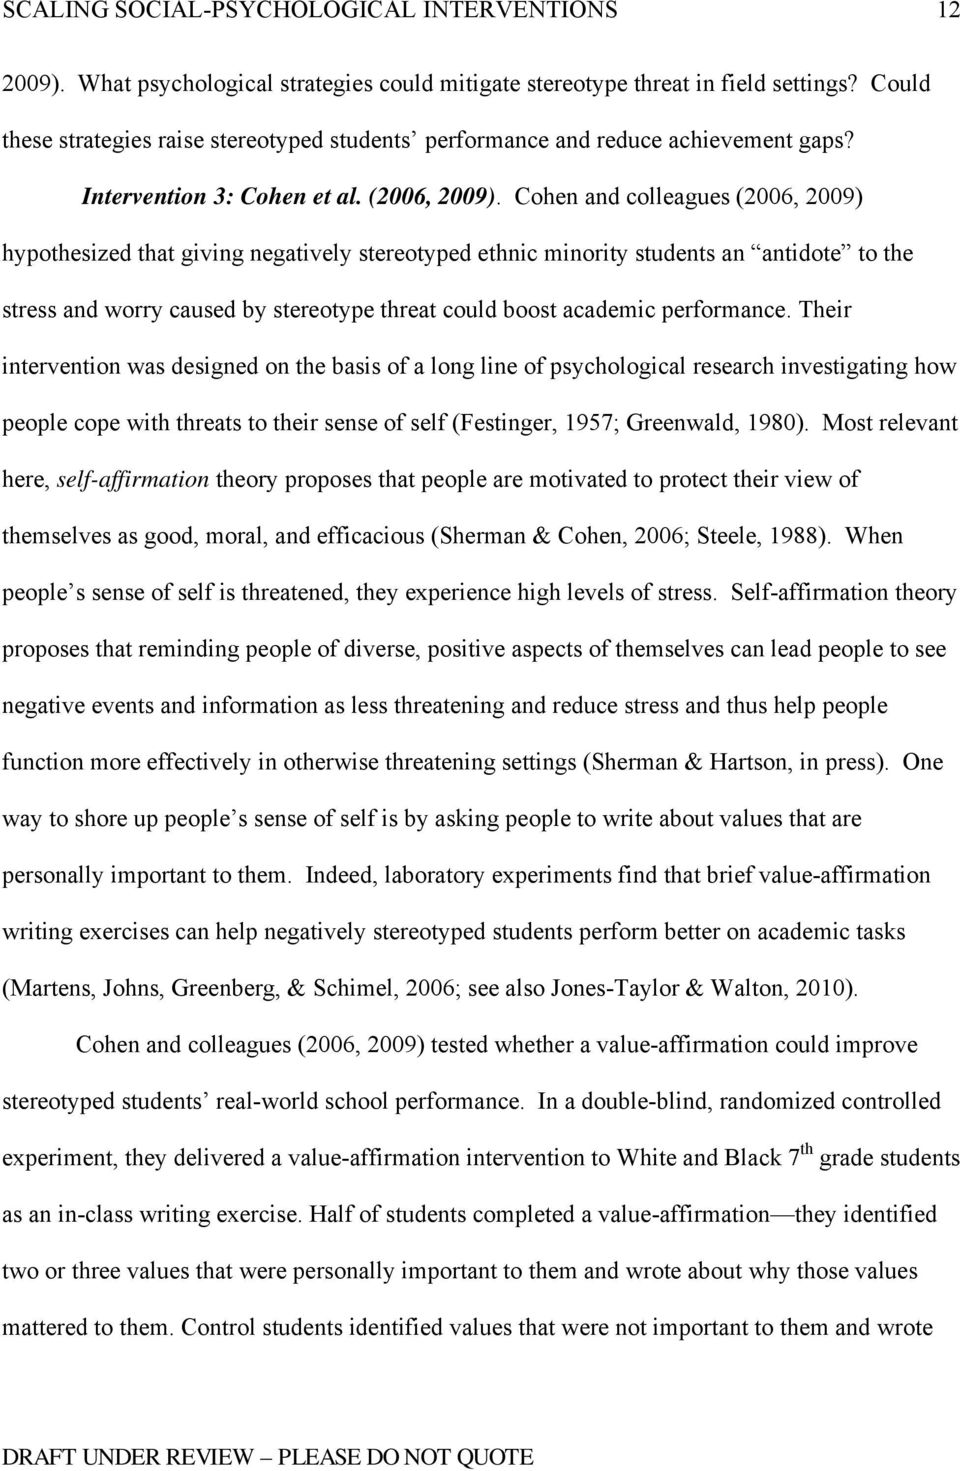 Cohen and colleagues (2006, 2009) hypothesized that giving negatively stereotyped ethnic minority students an antidote to the stress and worry caused by stereotype threat could boost academic